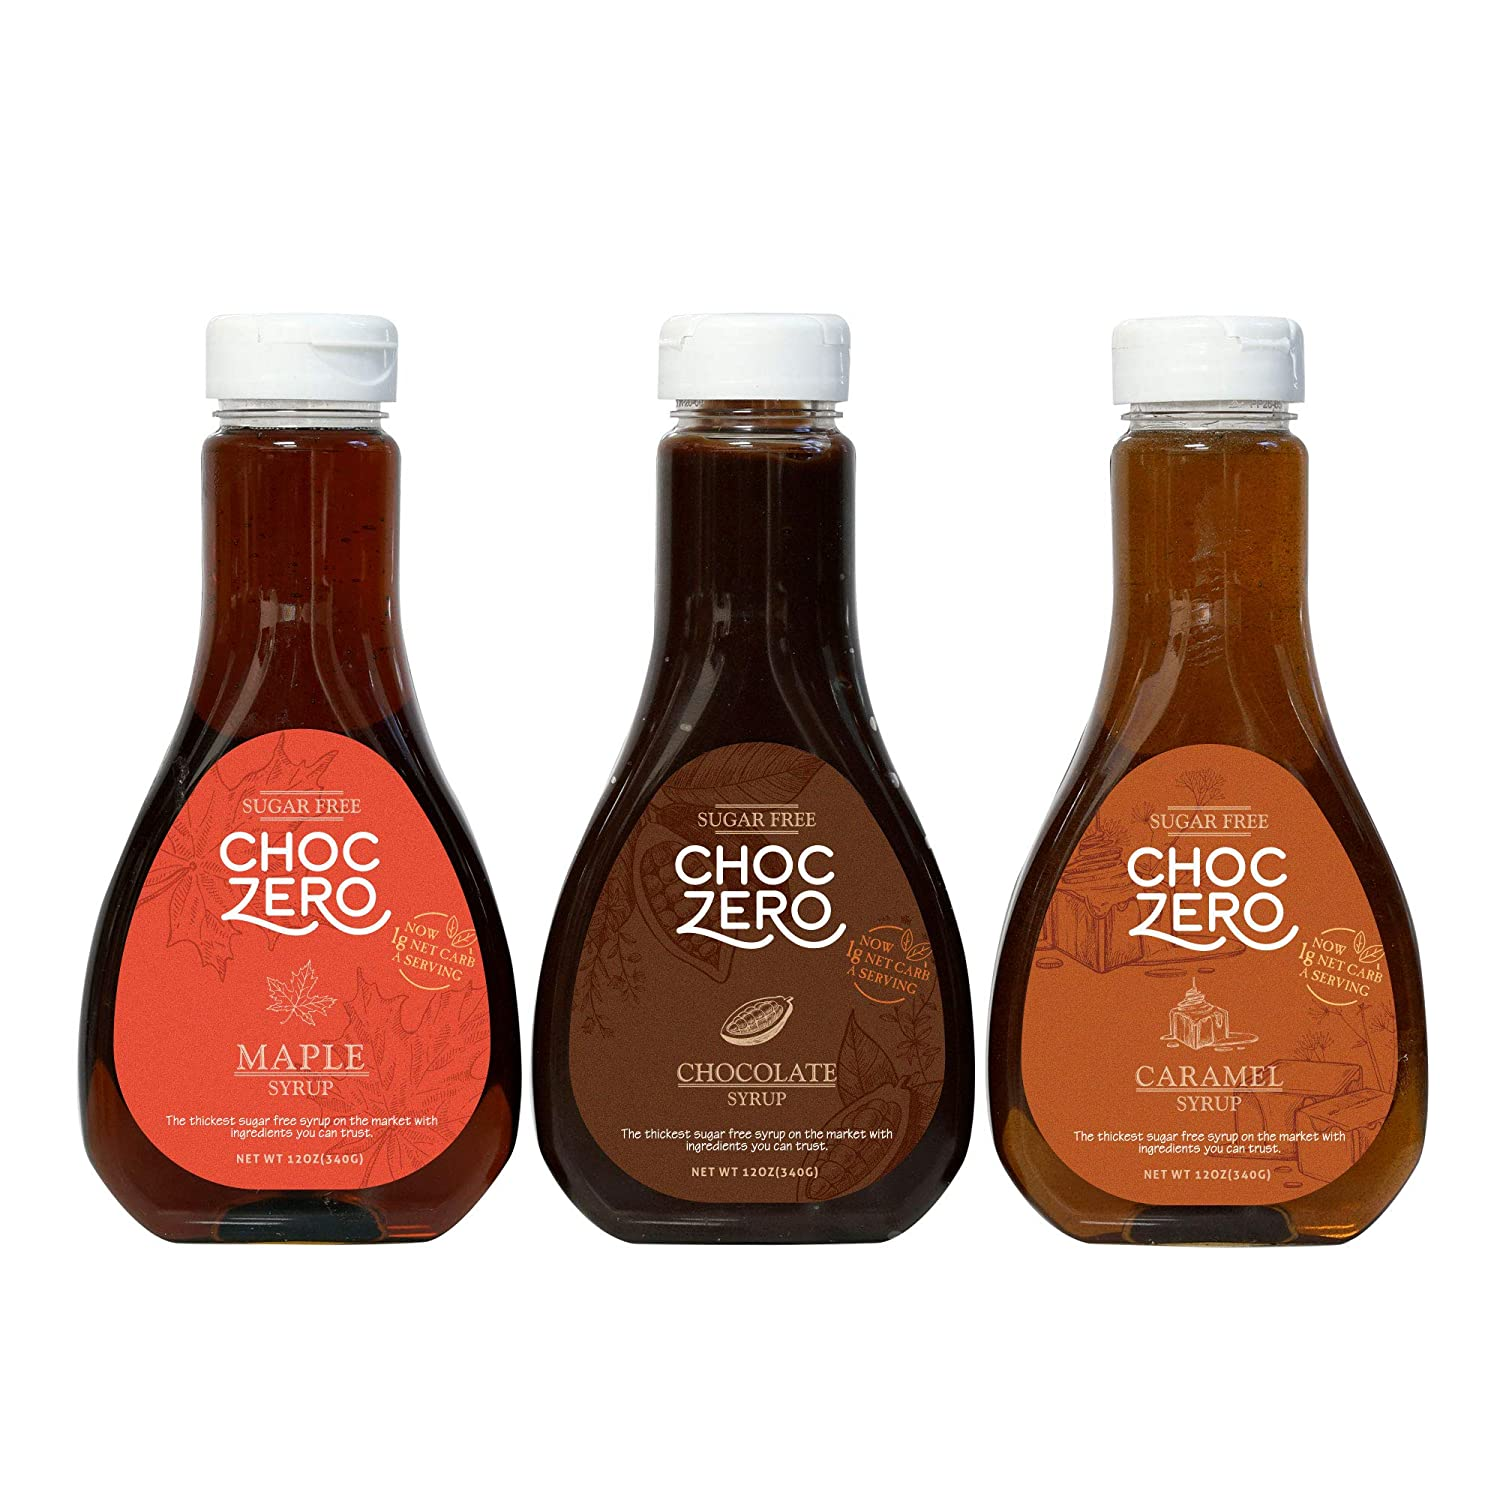 ChocZero Syrup Variety Pack. Sugar-free, Low Carb, No Preservatives. Thick and Rich. No Sugar Alcohol, Gluten-Free. 3 Bottles (Chocolate, Caramel, Maple) 81vdU76D2gL